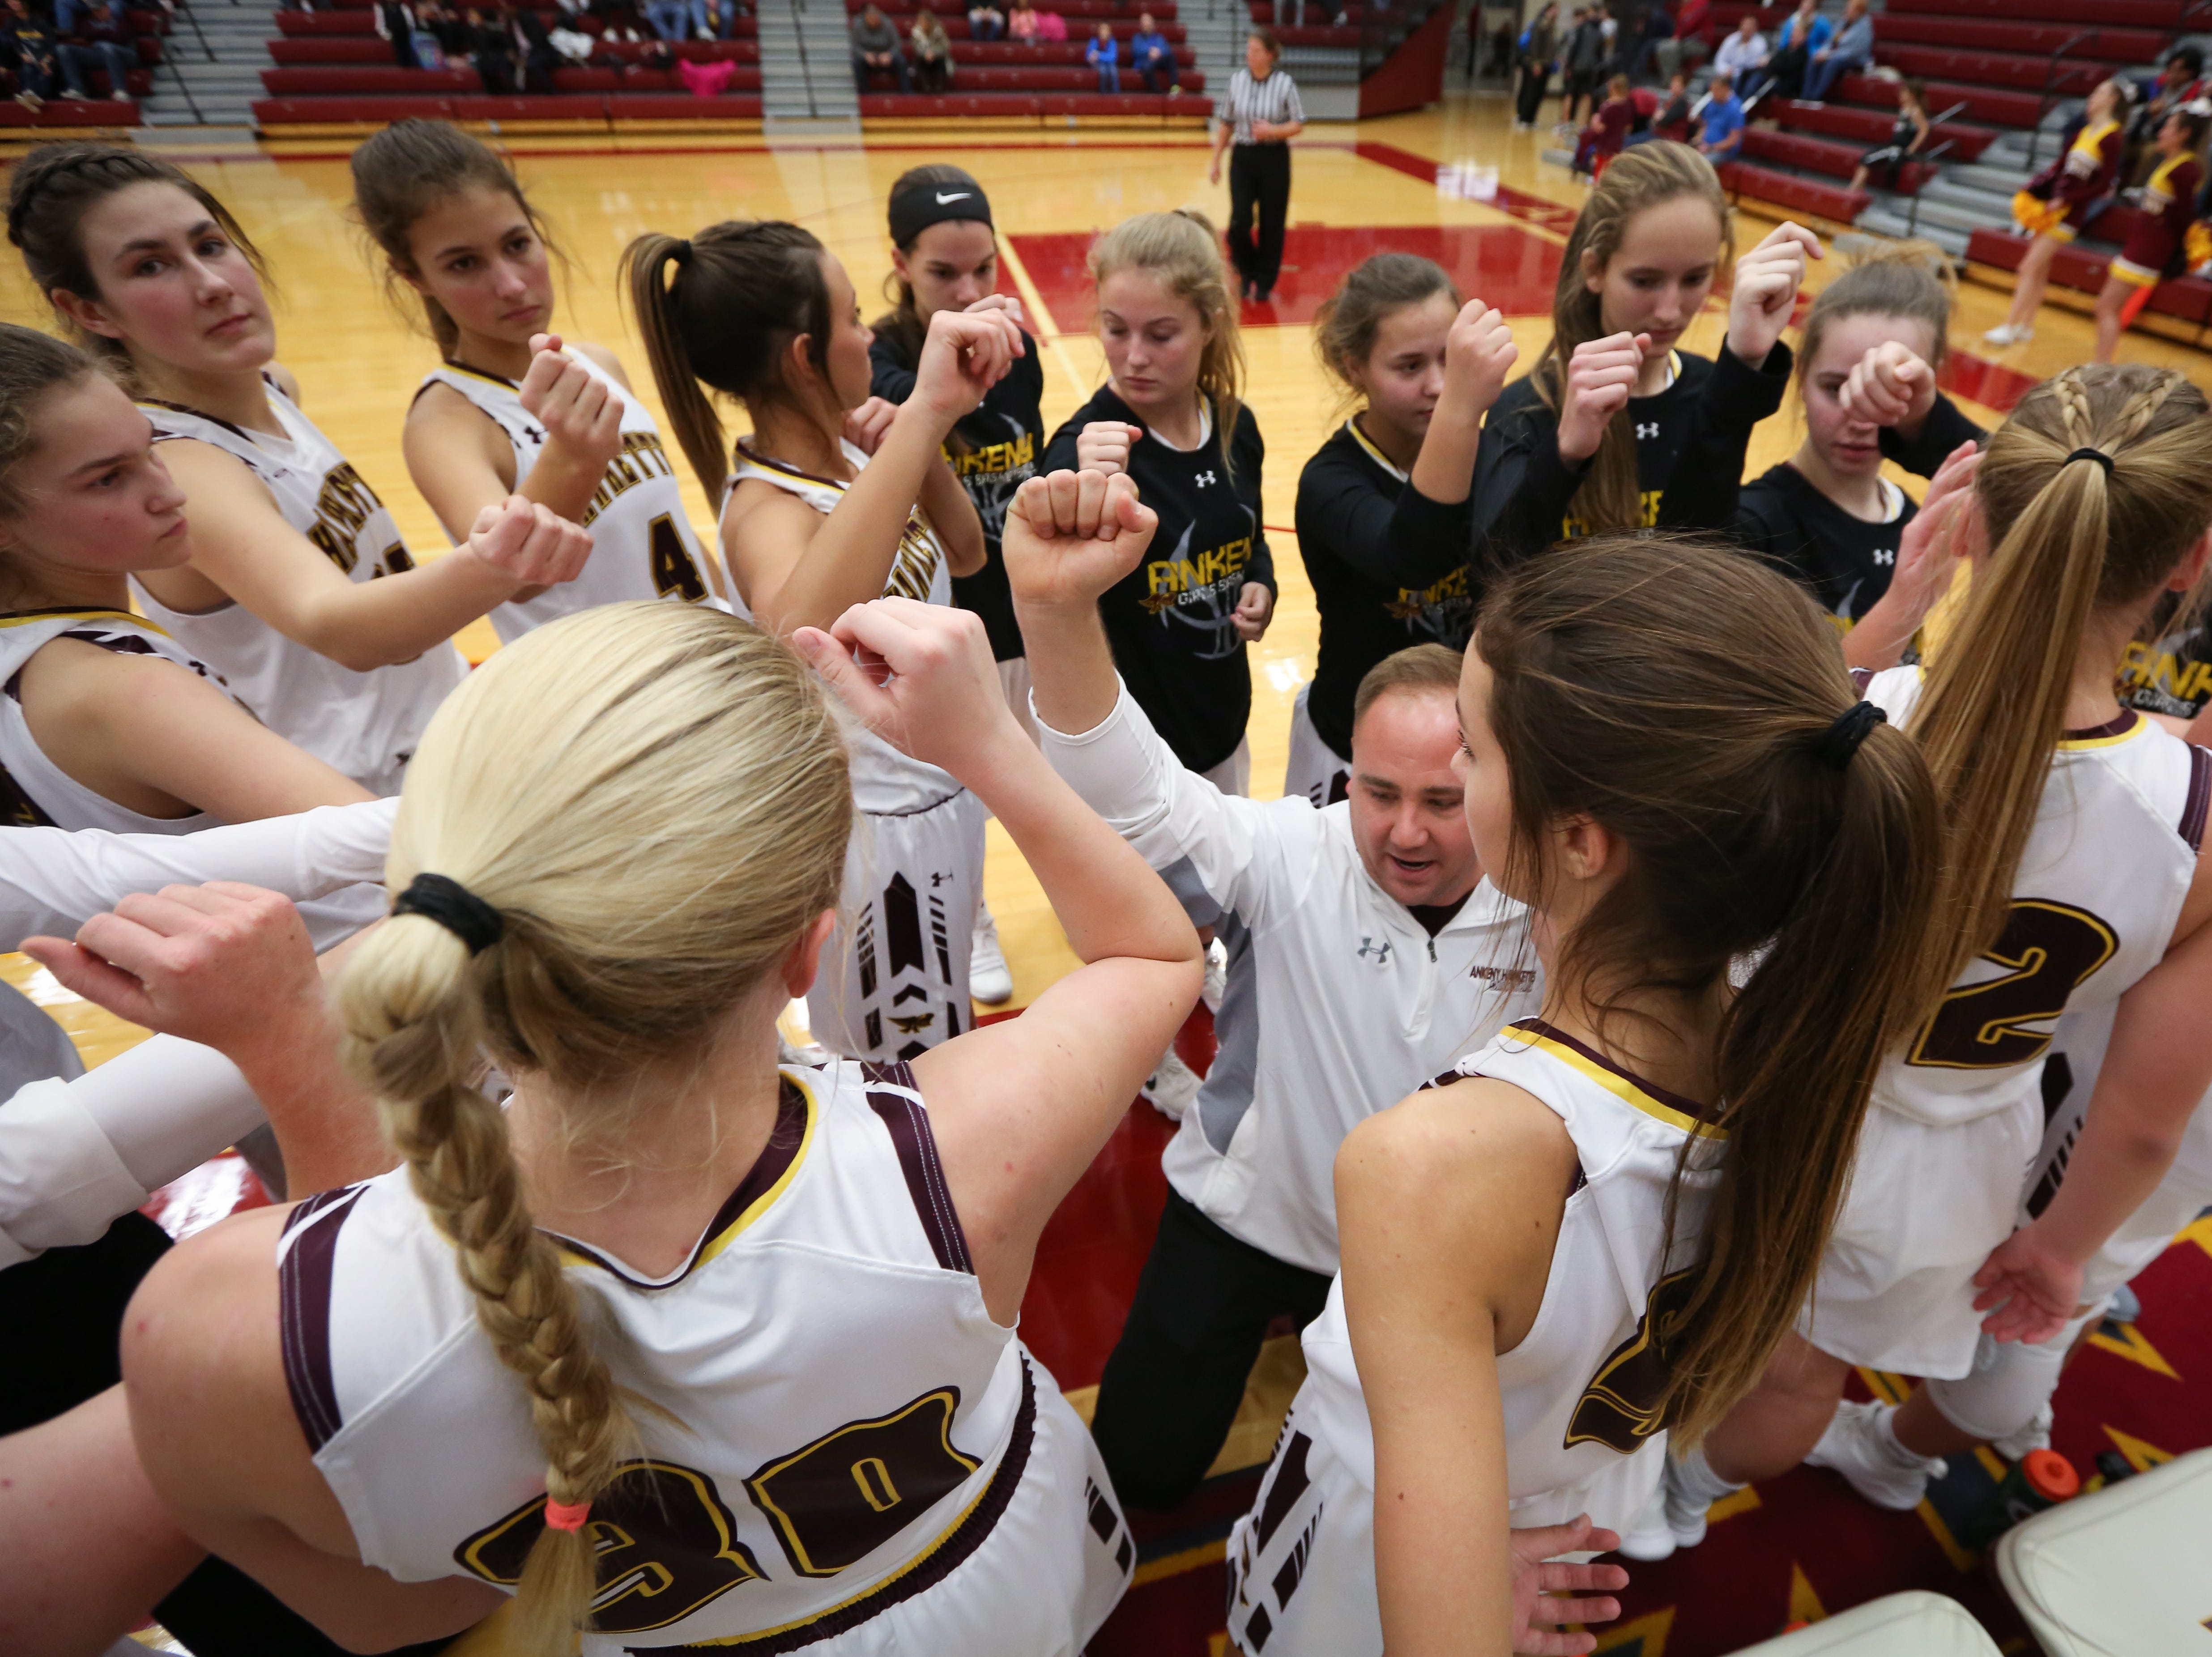 Ankeny head coach Dru McAnelly fires up his players during a girls high school basketball game between the Lincoln Railsplitters and the Ankeny Hawks at Ankeny High School on Dec. 4, 2018 in Ankeny, Iowa.